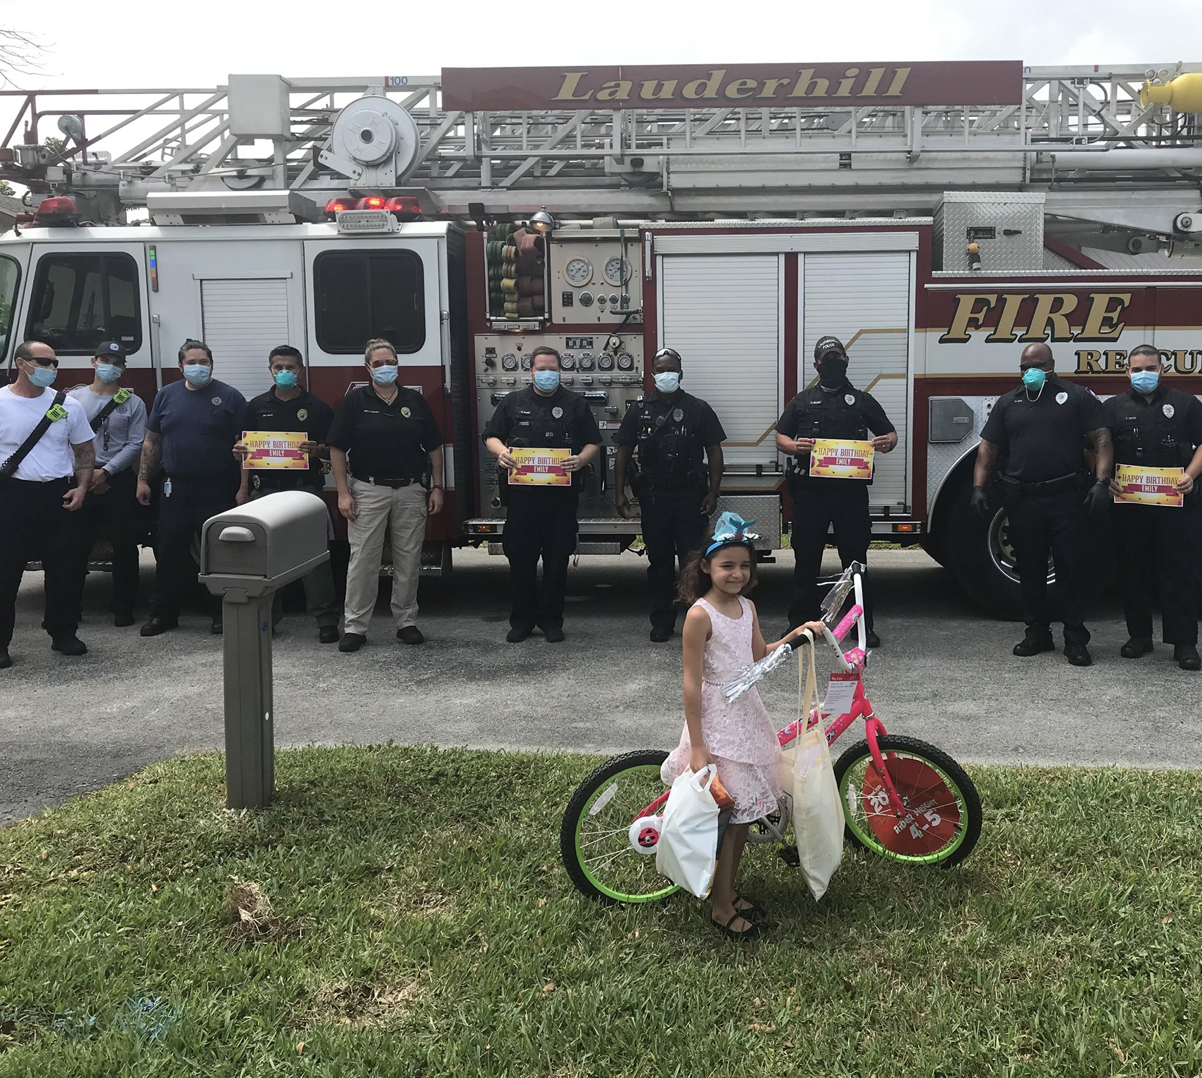 Emily Becker stands in front of fire engine and staff on lawn with her gifts